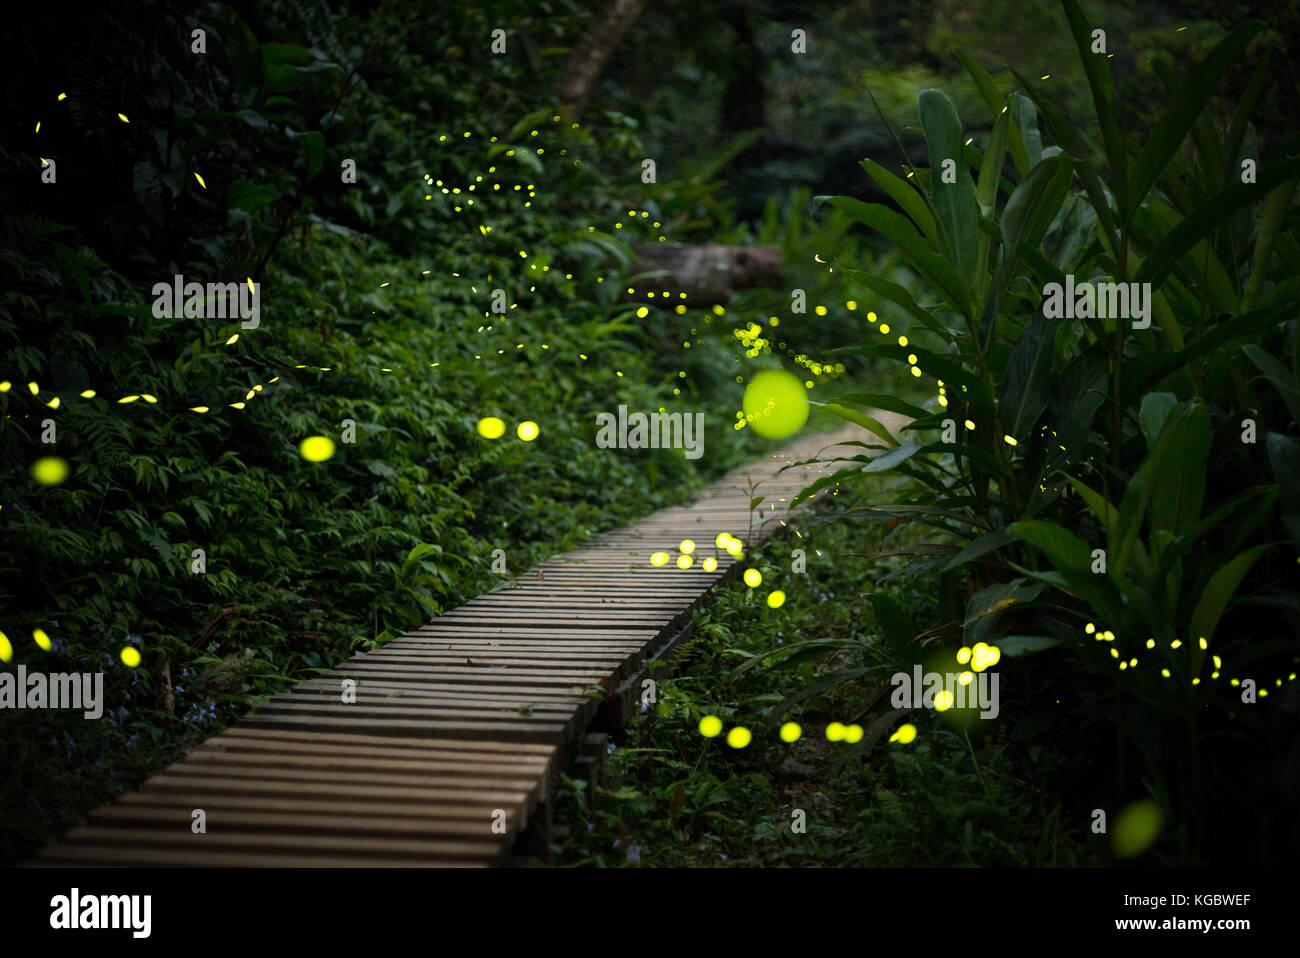 Firefly Insect At Night Fireflies At Night Stock Photos And Fireflies At Night Stock